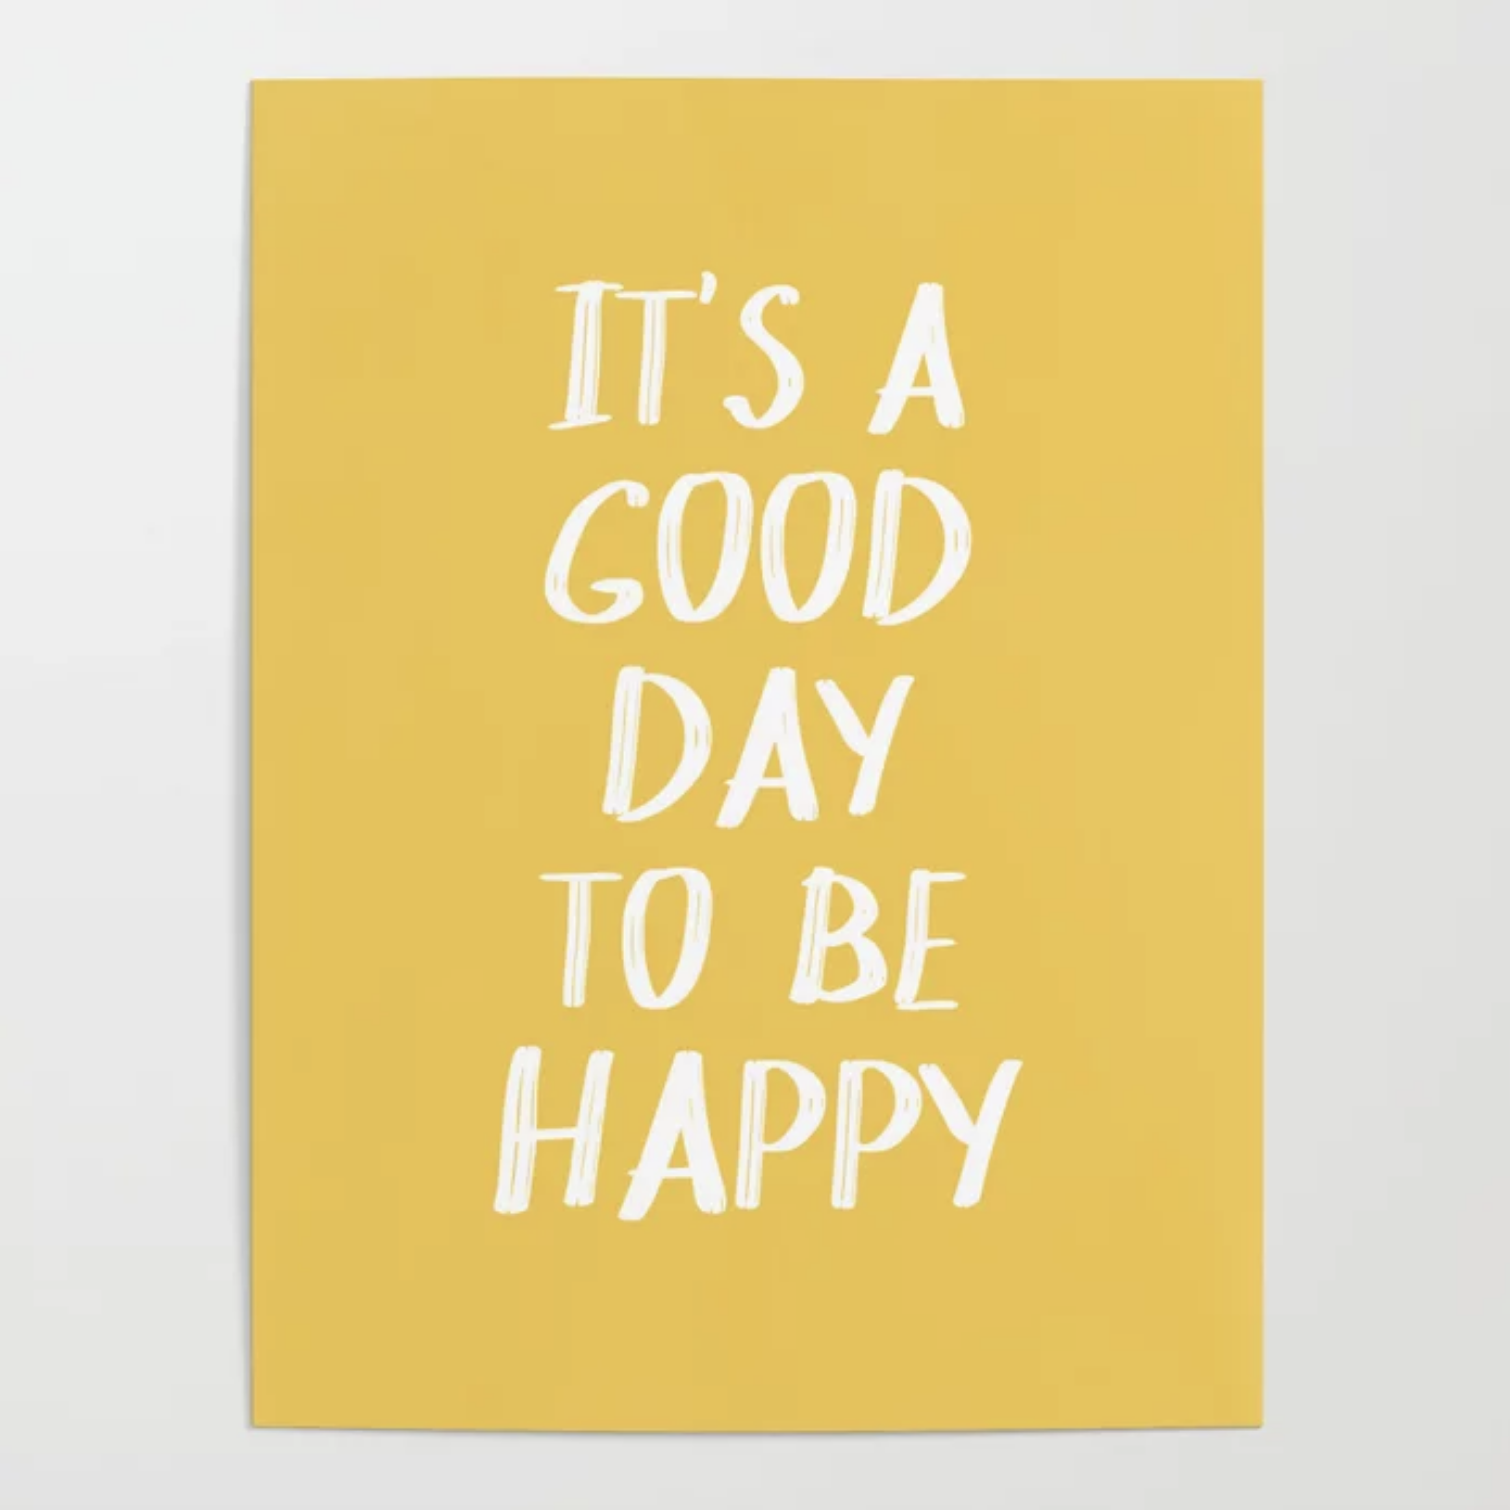 Good Day to Be Happy Print.png